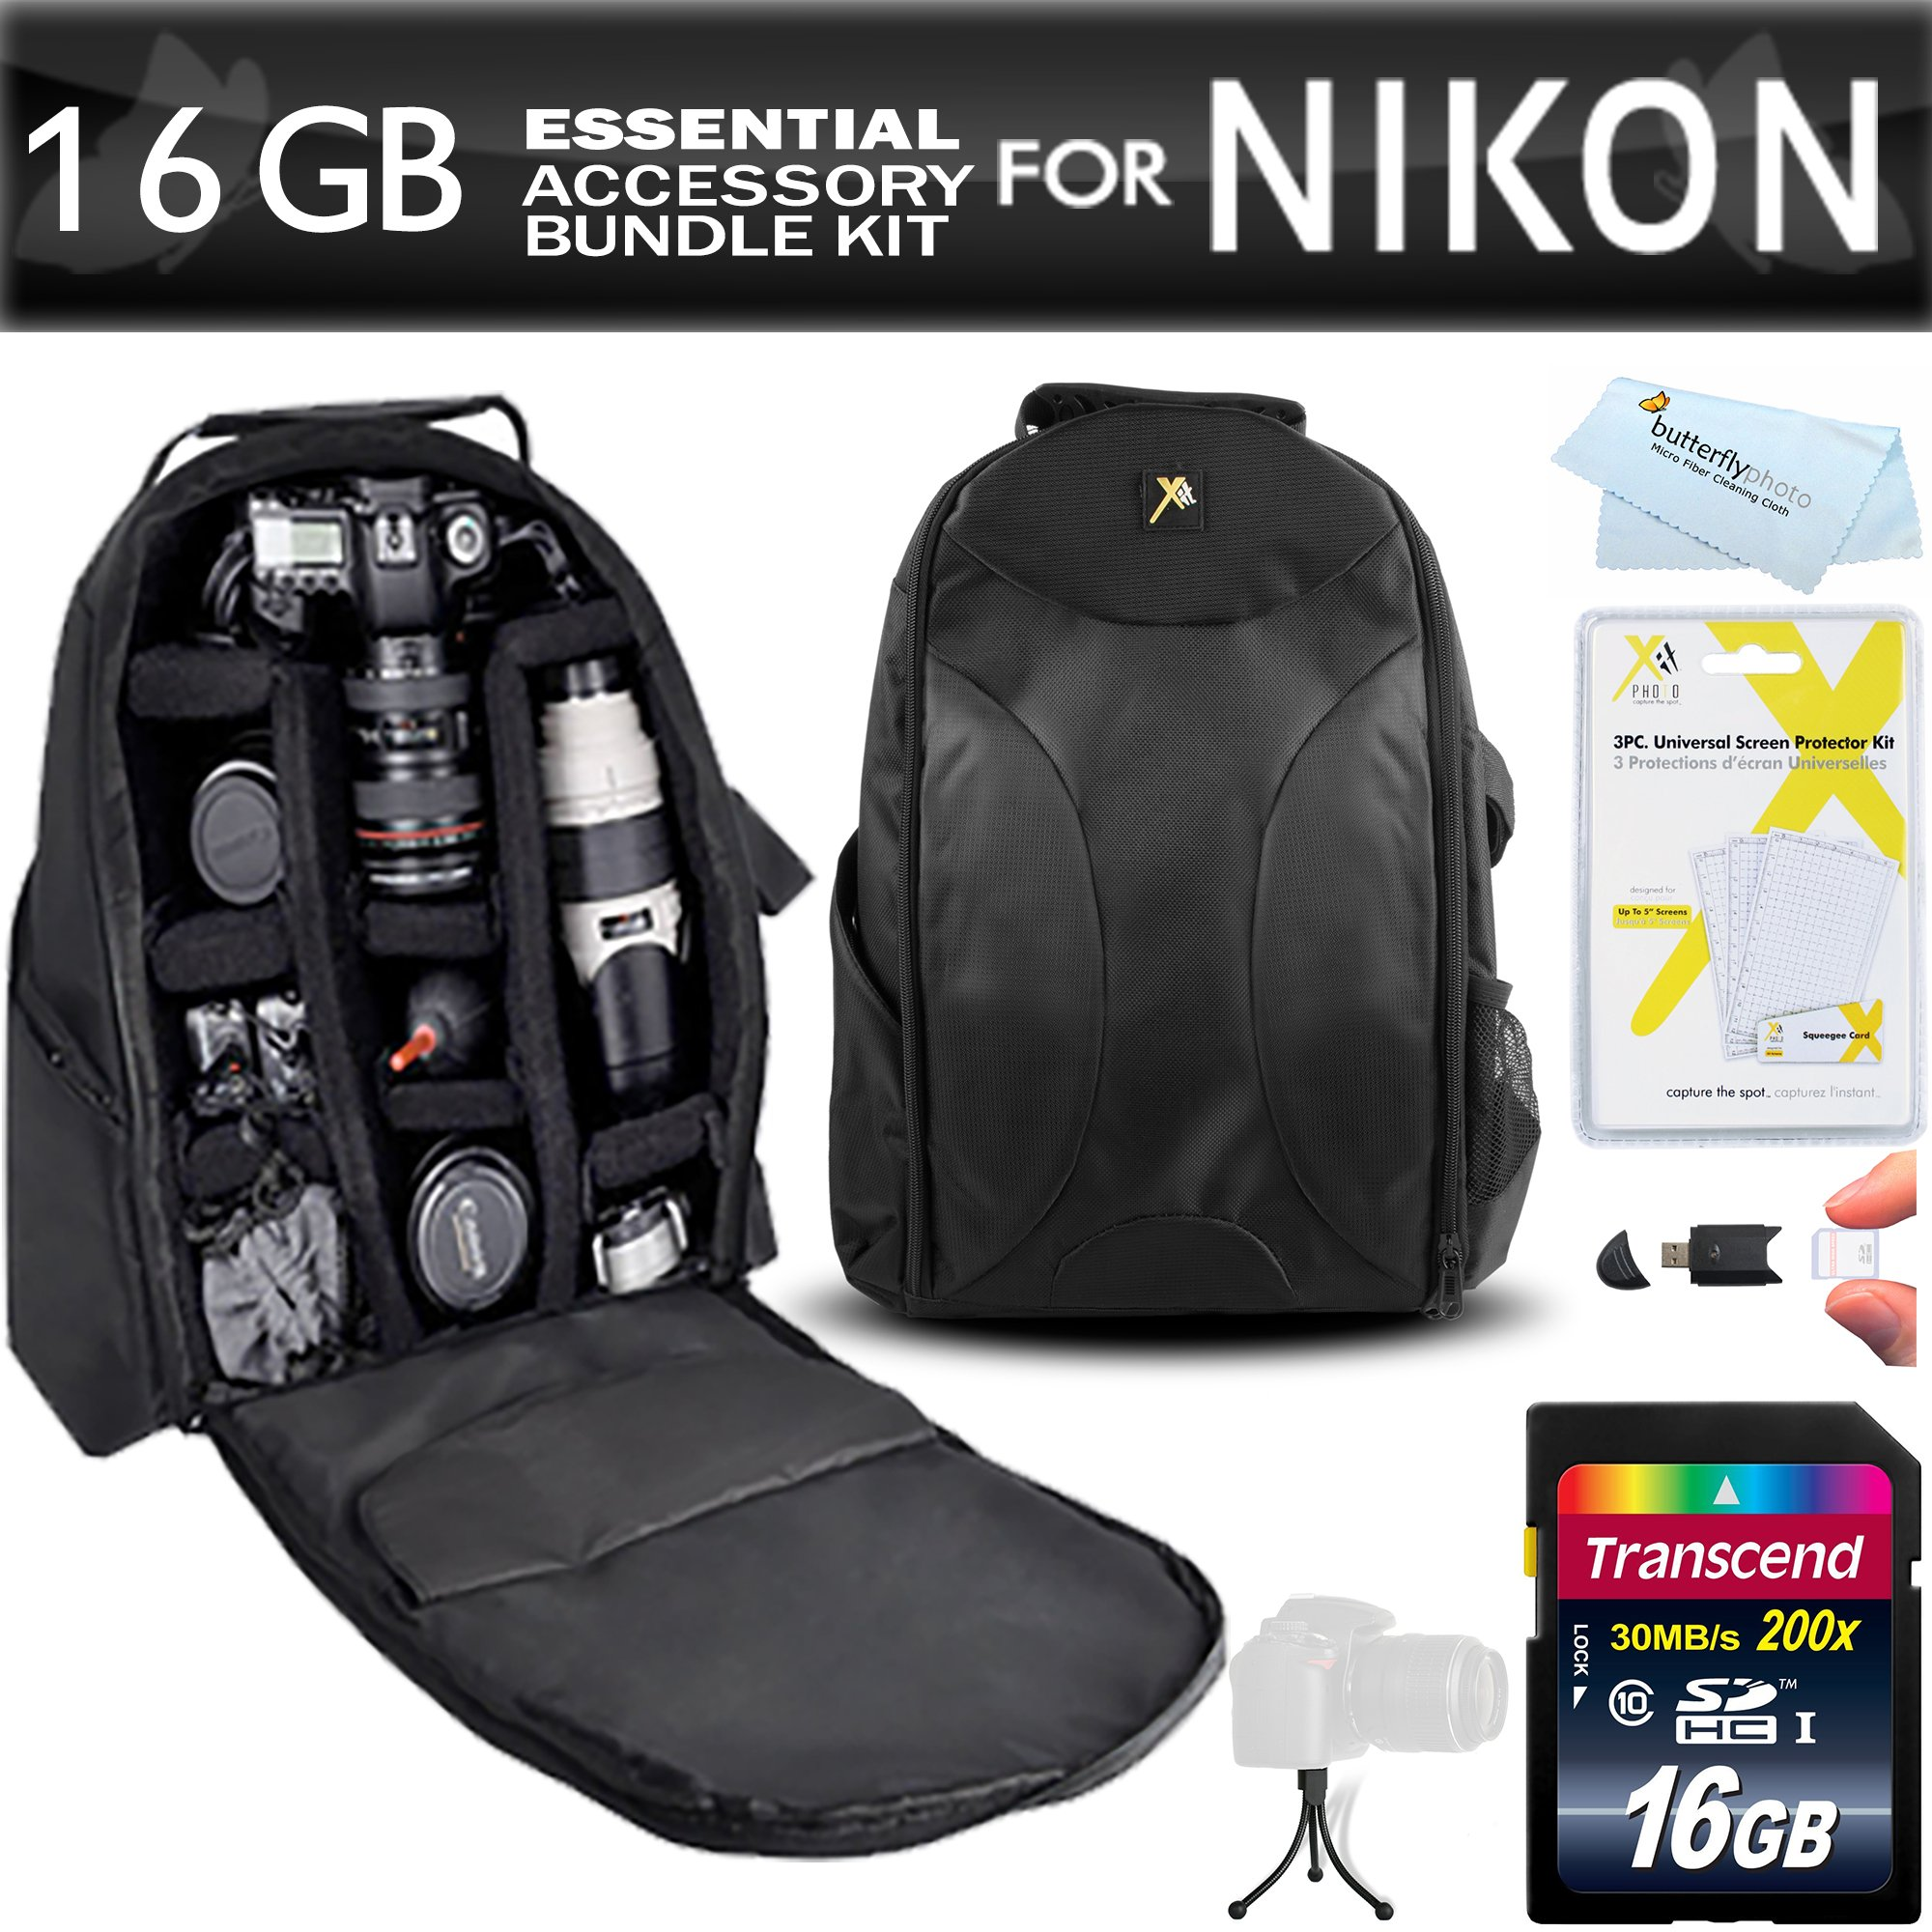 16GB Essentials Accessory Bundle Kit For Nikon D7200, D7100, D7000, D5500, D5300, D5200, D5100, D3400, D3300, D3200, D3100, D800, D800E, D700, D600, D610, D300S, D90 DSLR Digital SLR Camera Includes 16GB High Speed SD Memory Card + BackPack Case ++